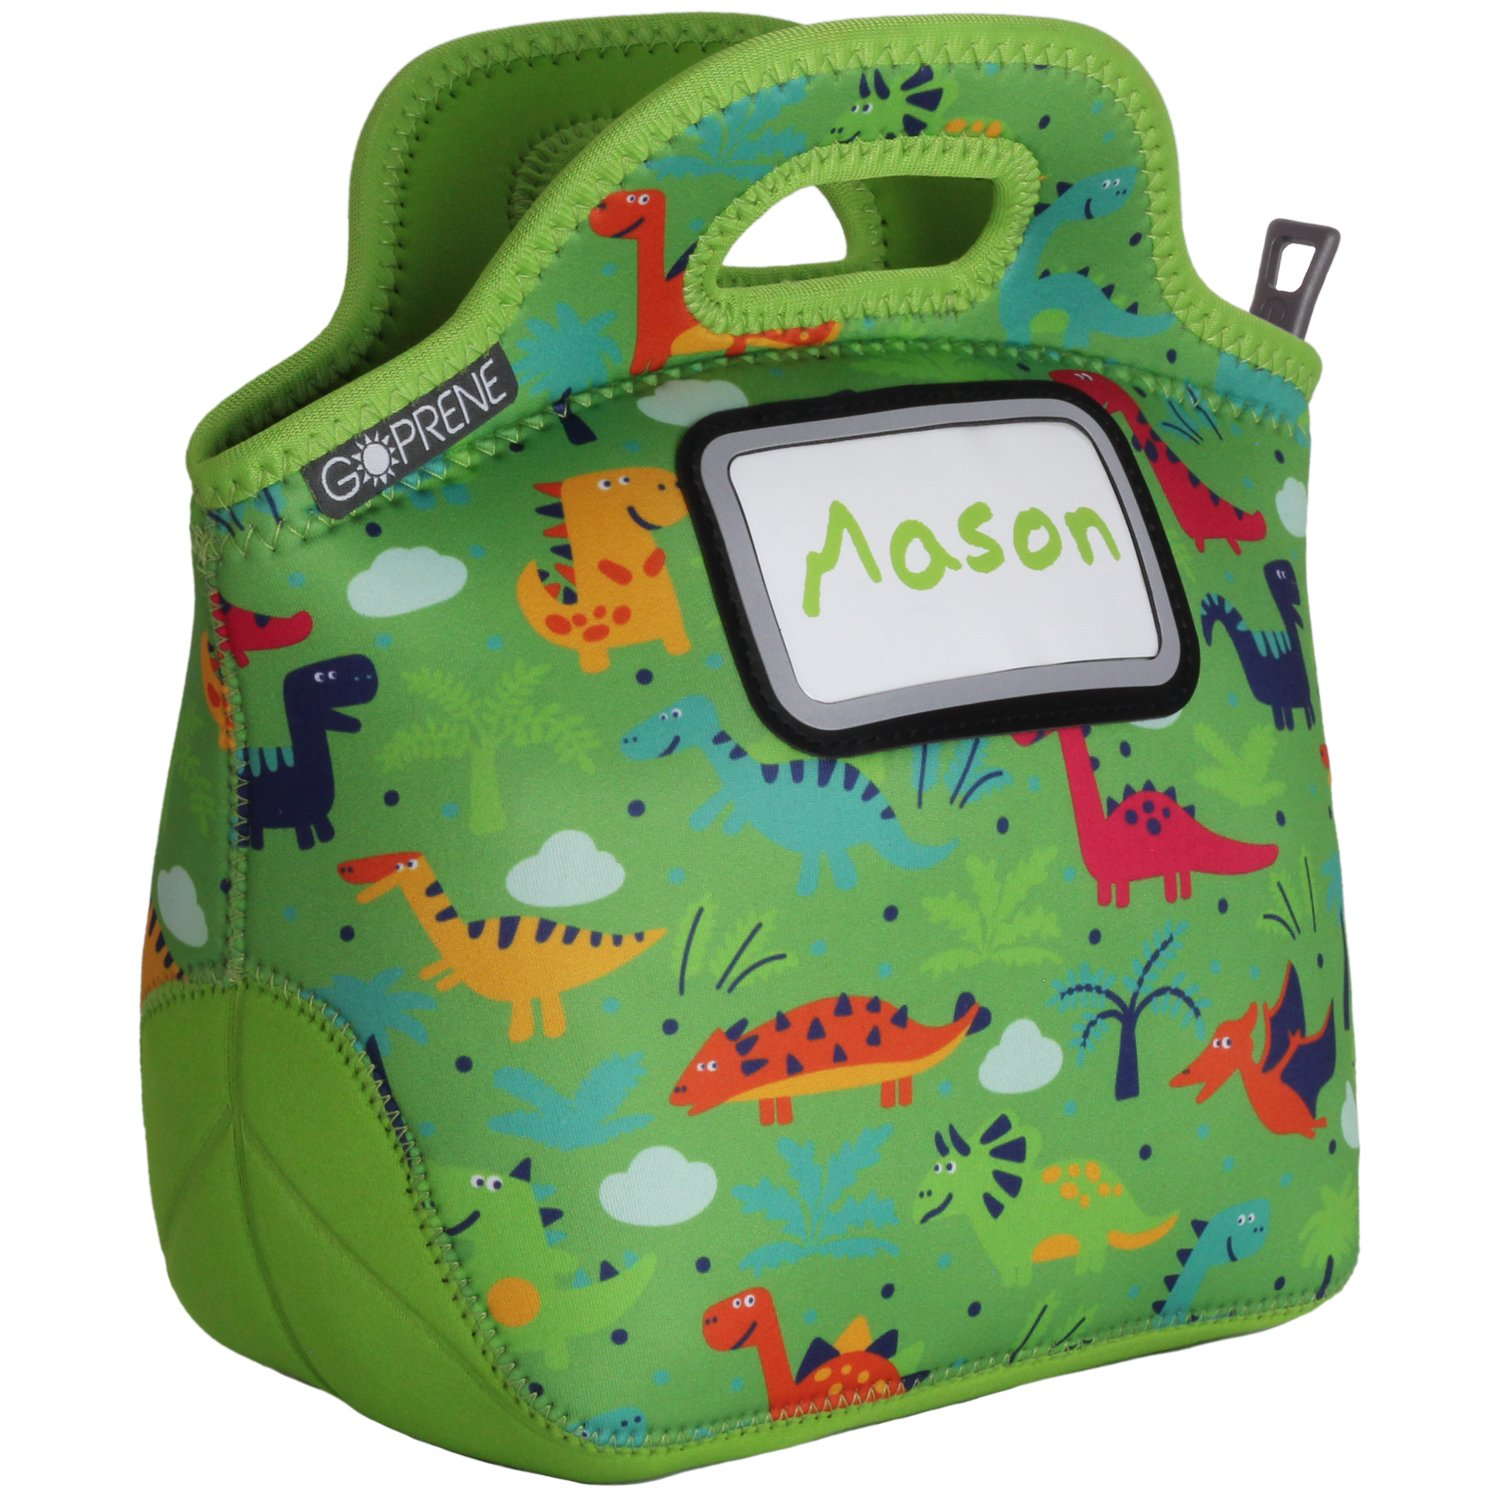 GOPRENE Kids Dinosaur Neoprene Lunch Bag with ID Card Pocket | Identi-Tote Insulated, Reusable, Foldable, Washable, Color: Green Dino, 3 Blank Name Cards